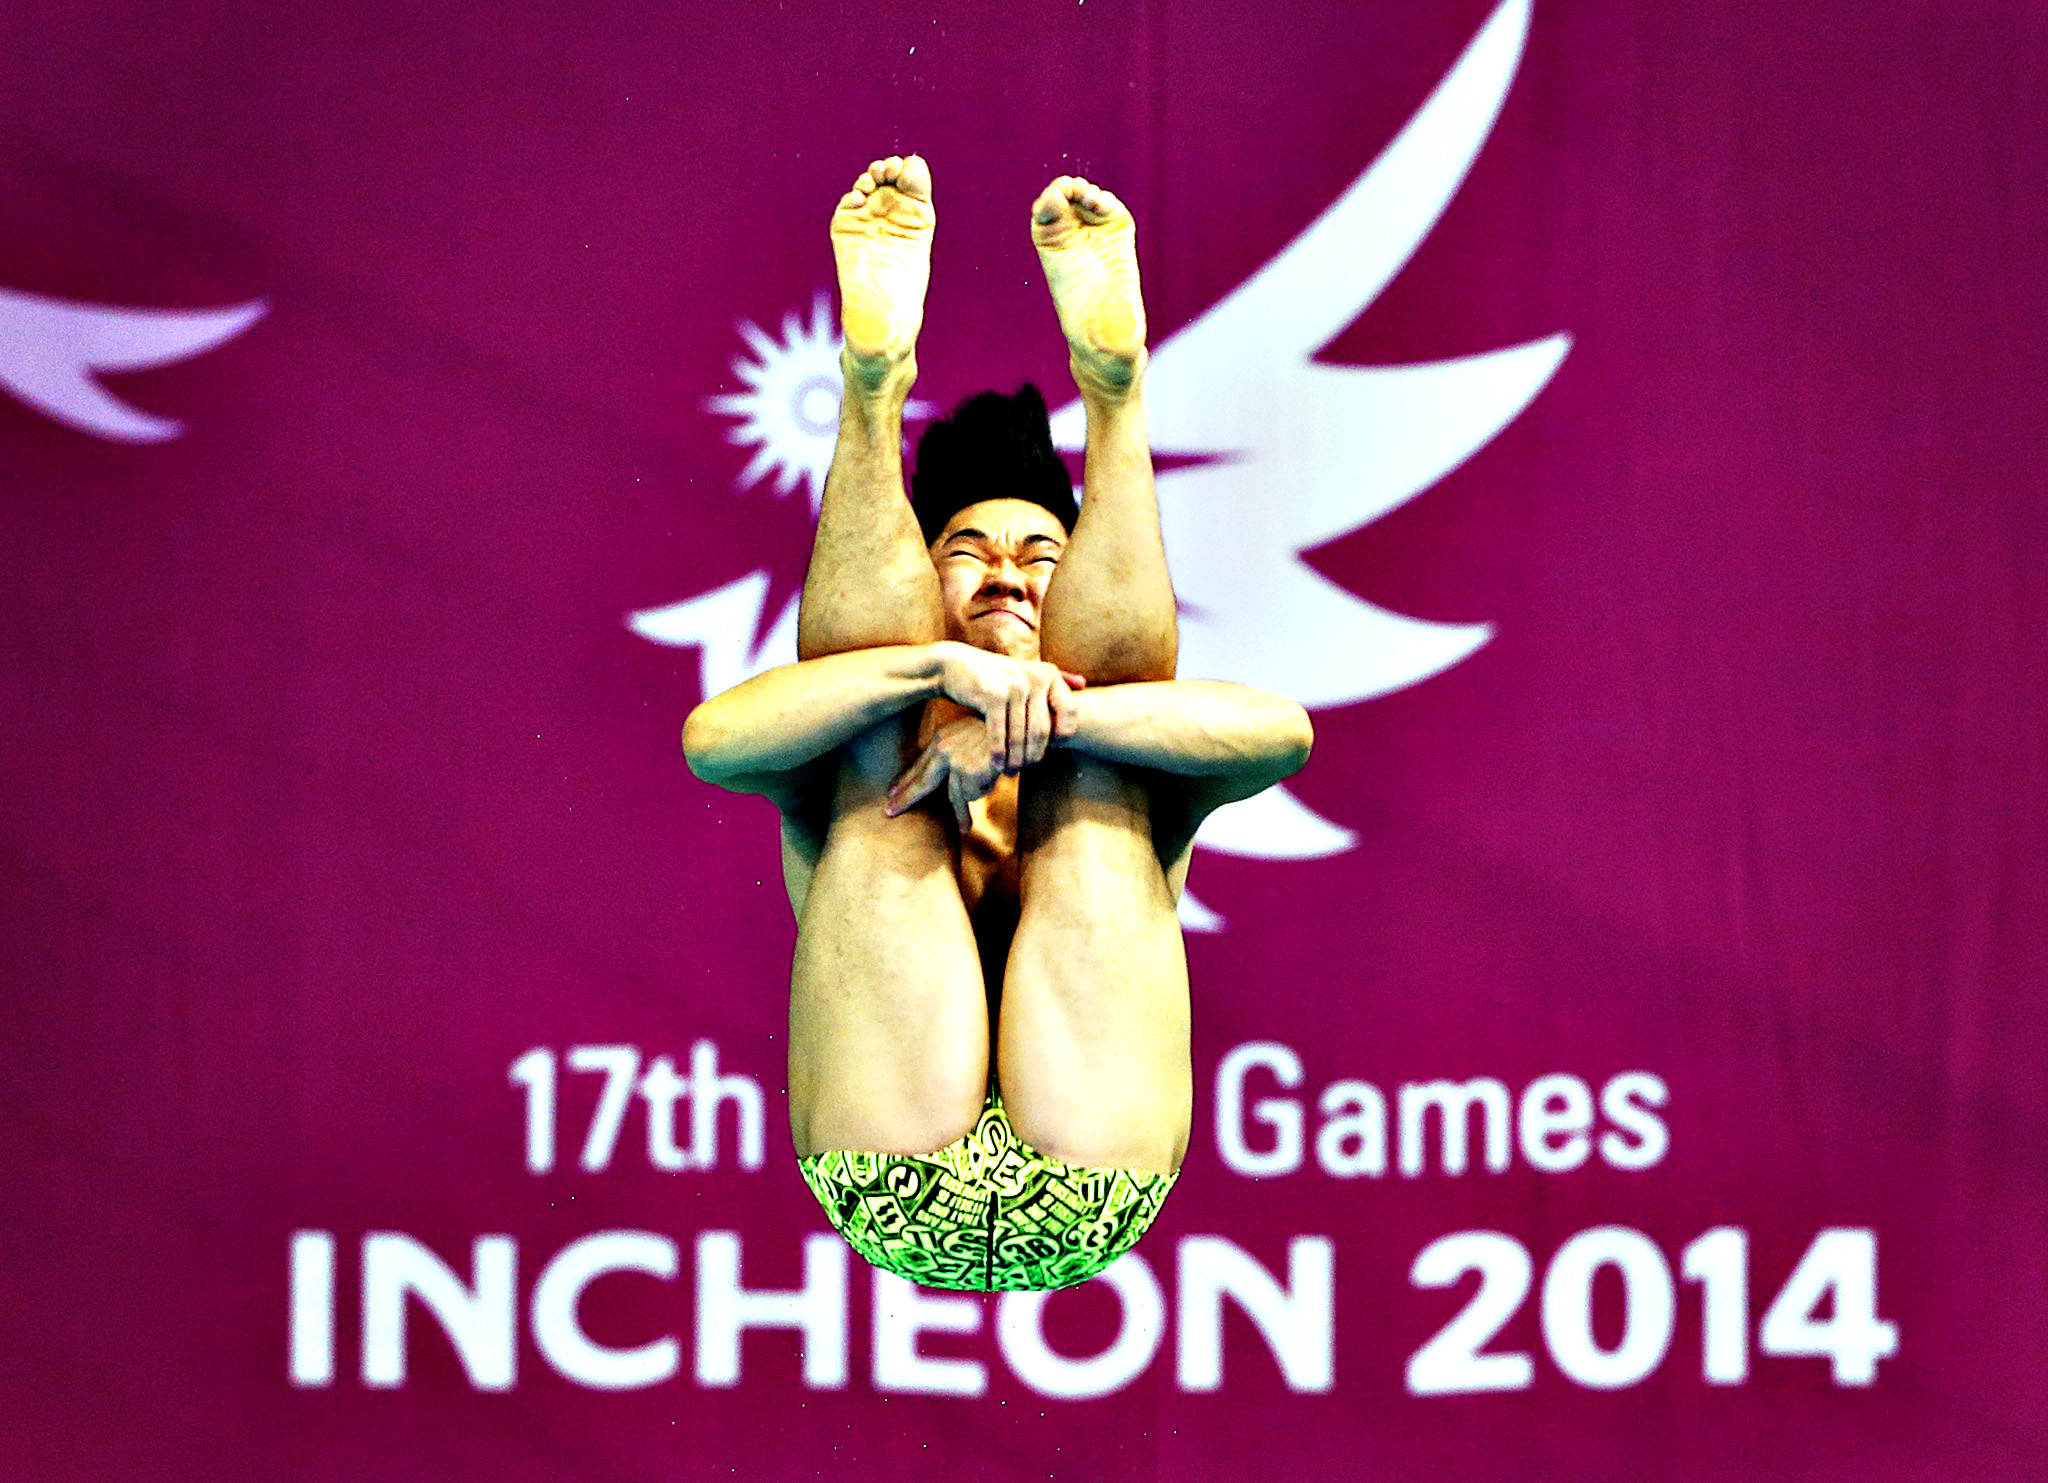 South Korea's Kim Yeongnam competes in the Men's 1m Springboard diving final at the Munhak Park Tae-hwan Aquatics Center during the 17th Asian Games in Incheon October 1, 2014.